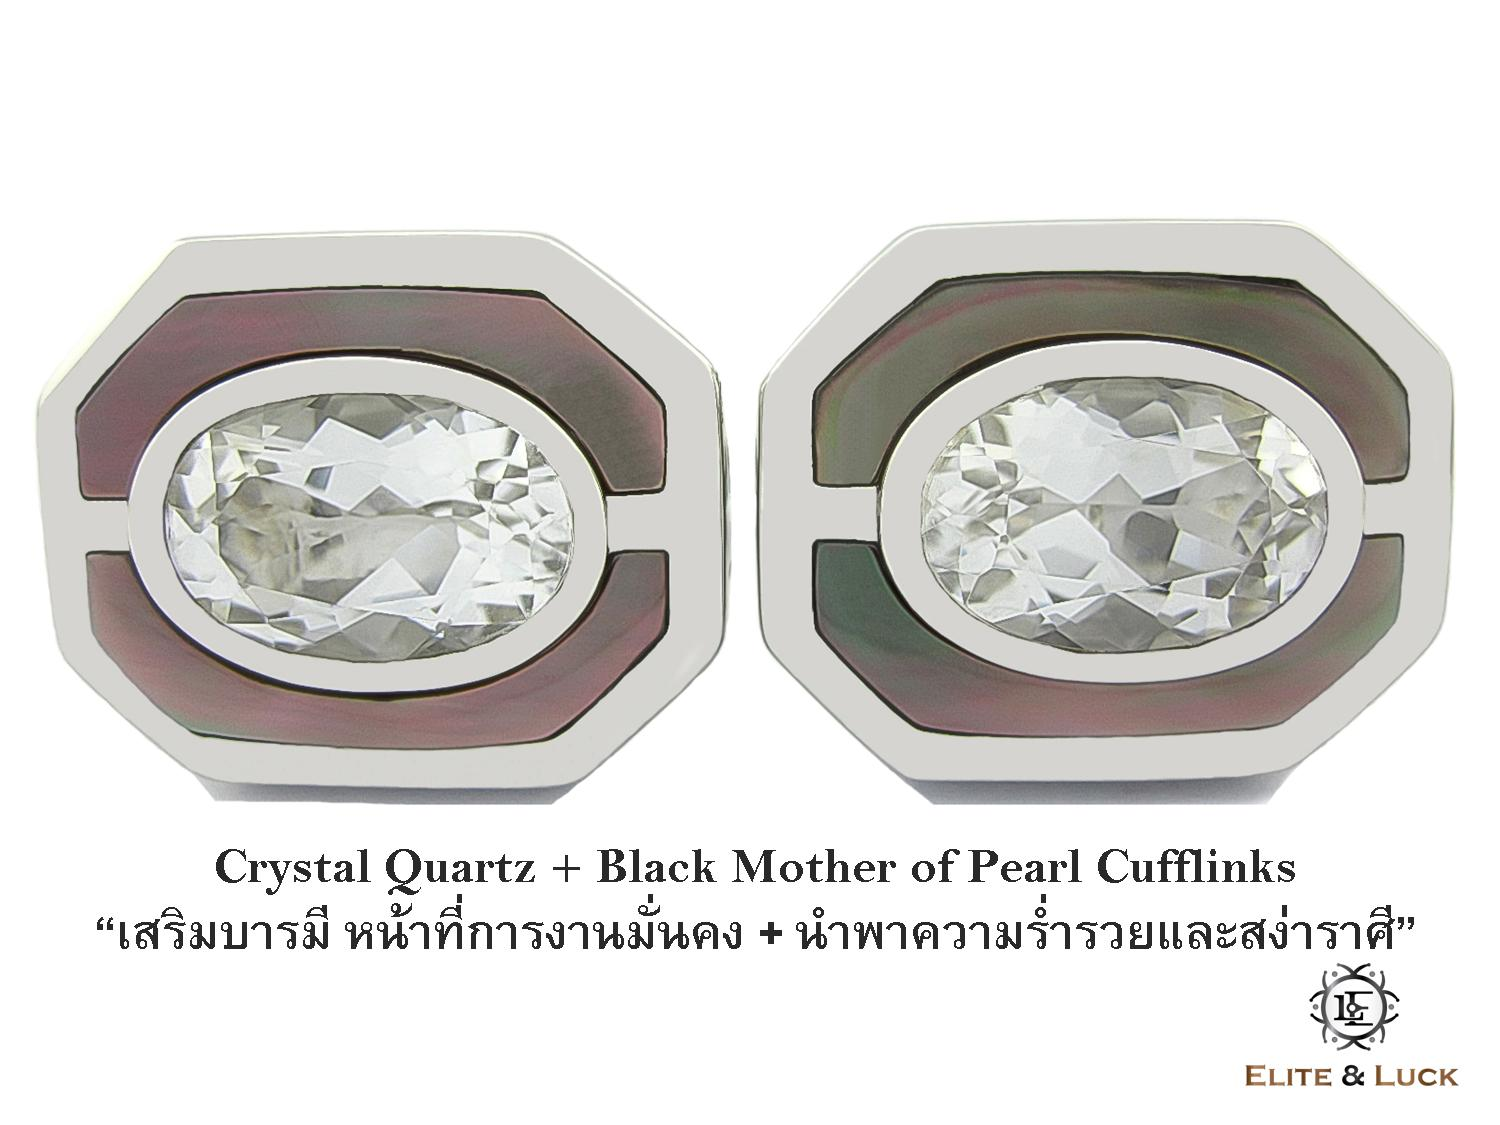 Crystal Quartz + Black Mother of Pearl Sterling Silver Cufflinks สี Rhodium รุ่น Charming